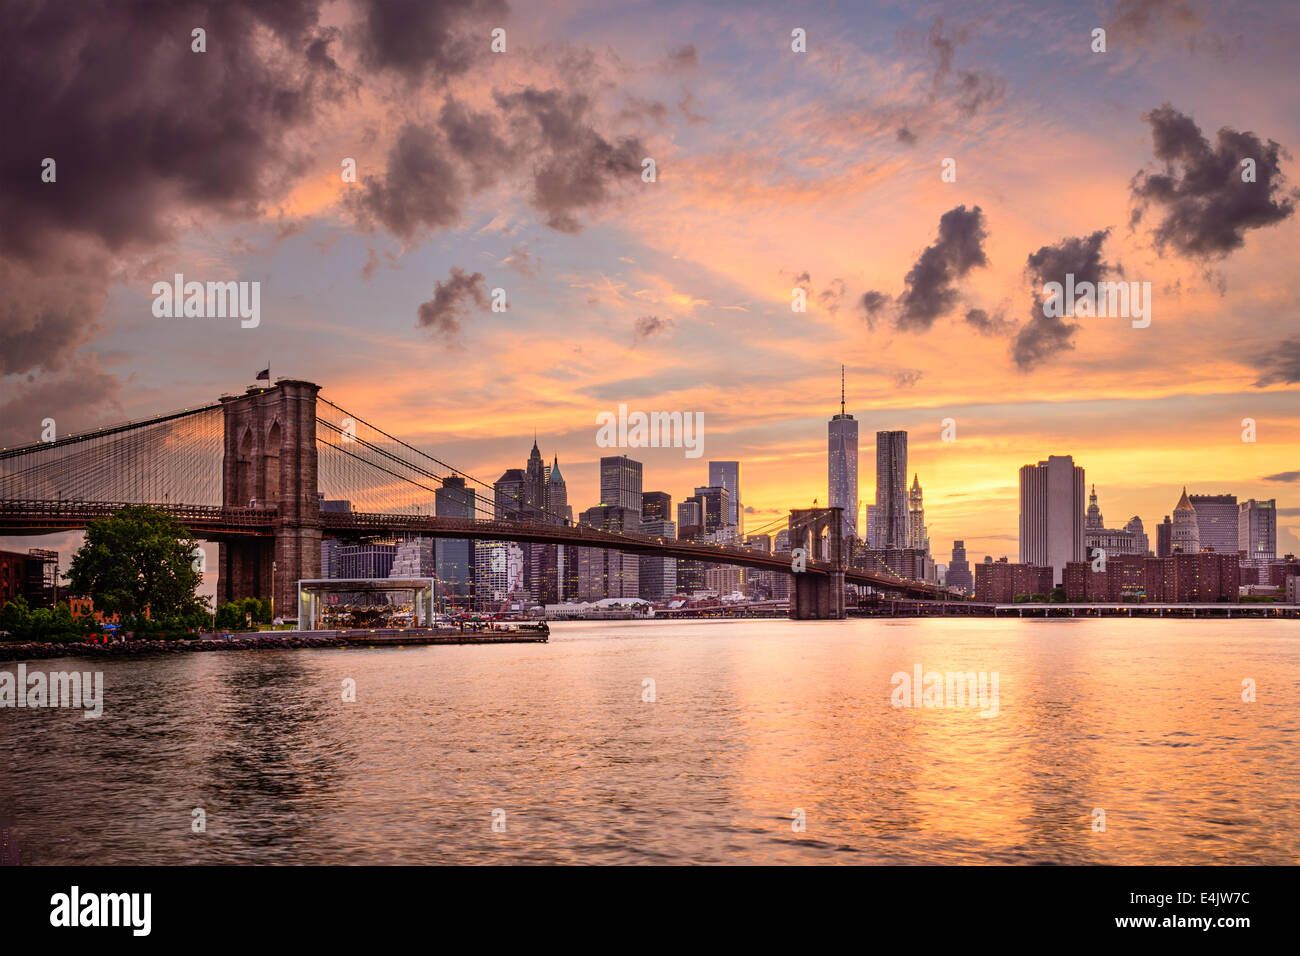 skyline von new york city usa bei sonnenuntergang stockfoto bild 71715040 alamy. Black Bedroom Furniture Sets. Home Design Ideas